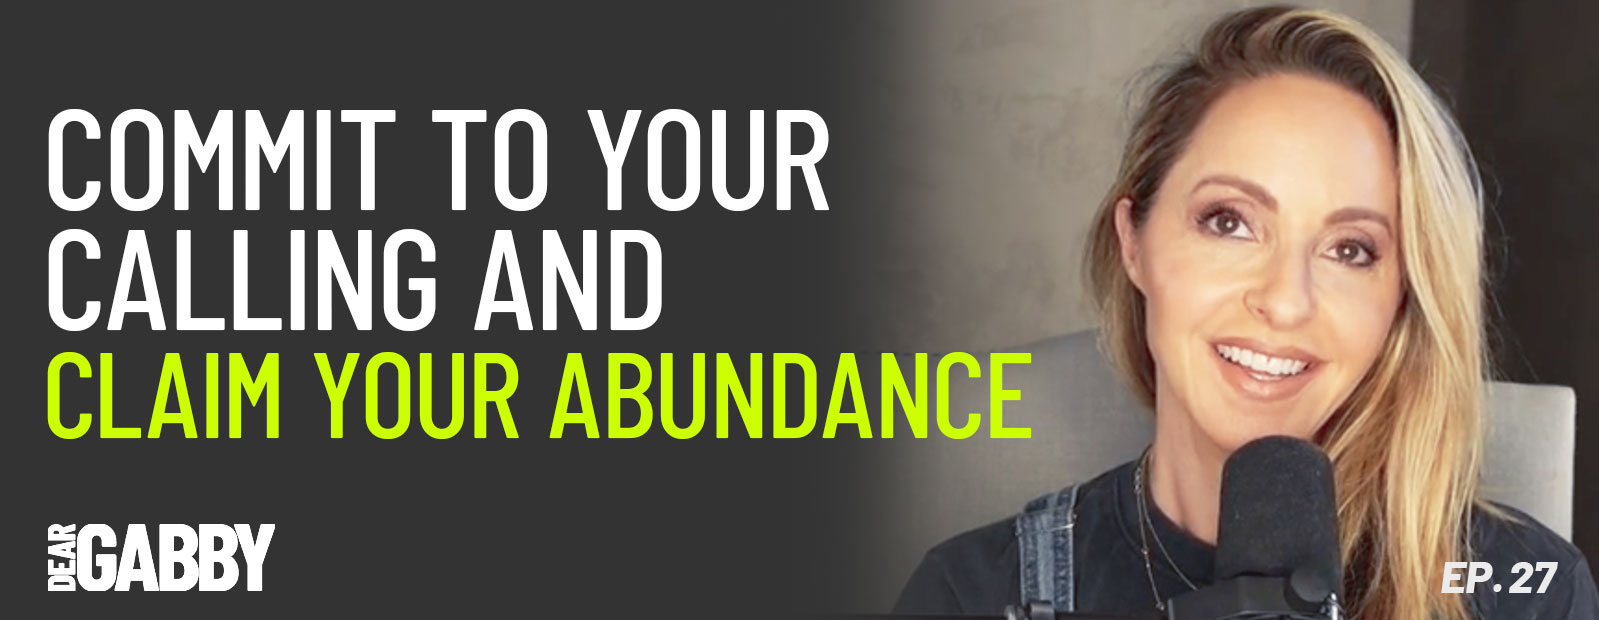 Commit to Your Calling and Claim Your Abundance